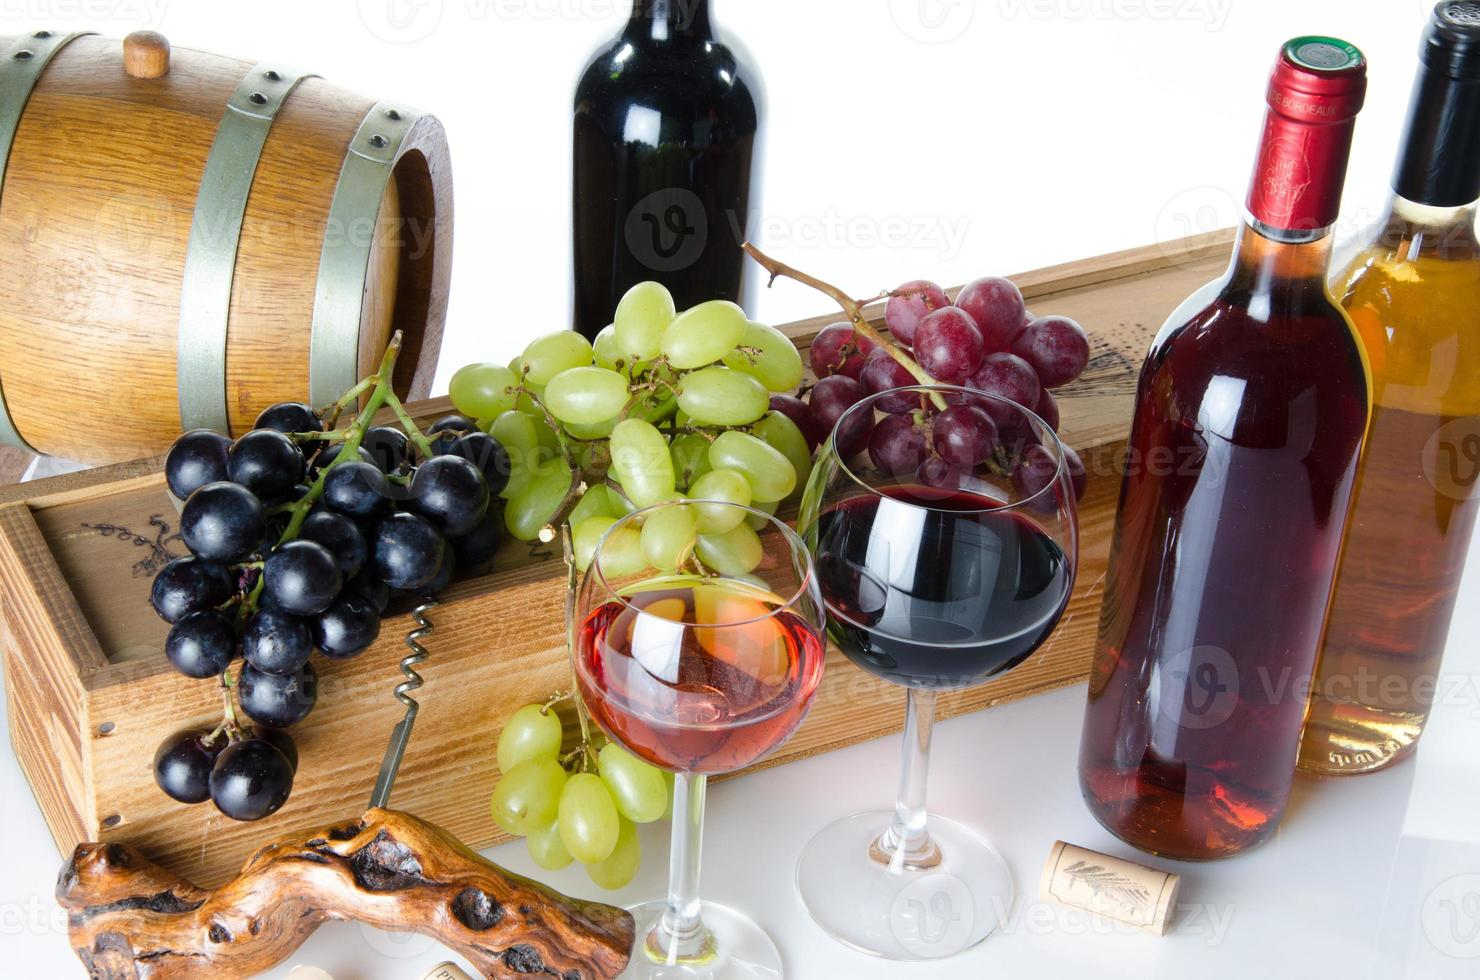 Composition with glasses, bottles of wine and grapes photo